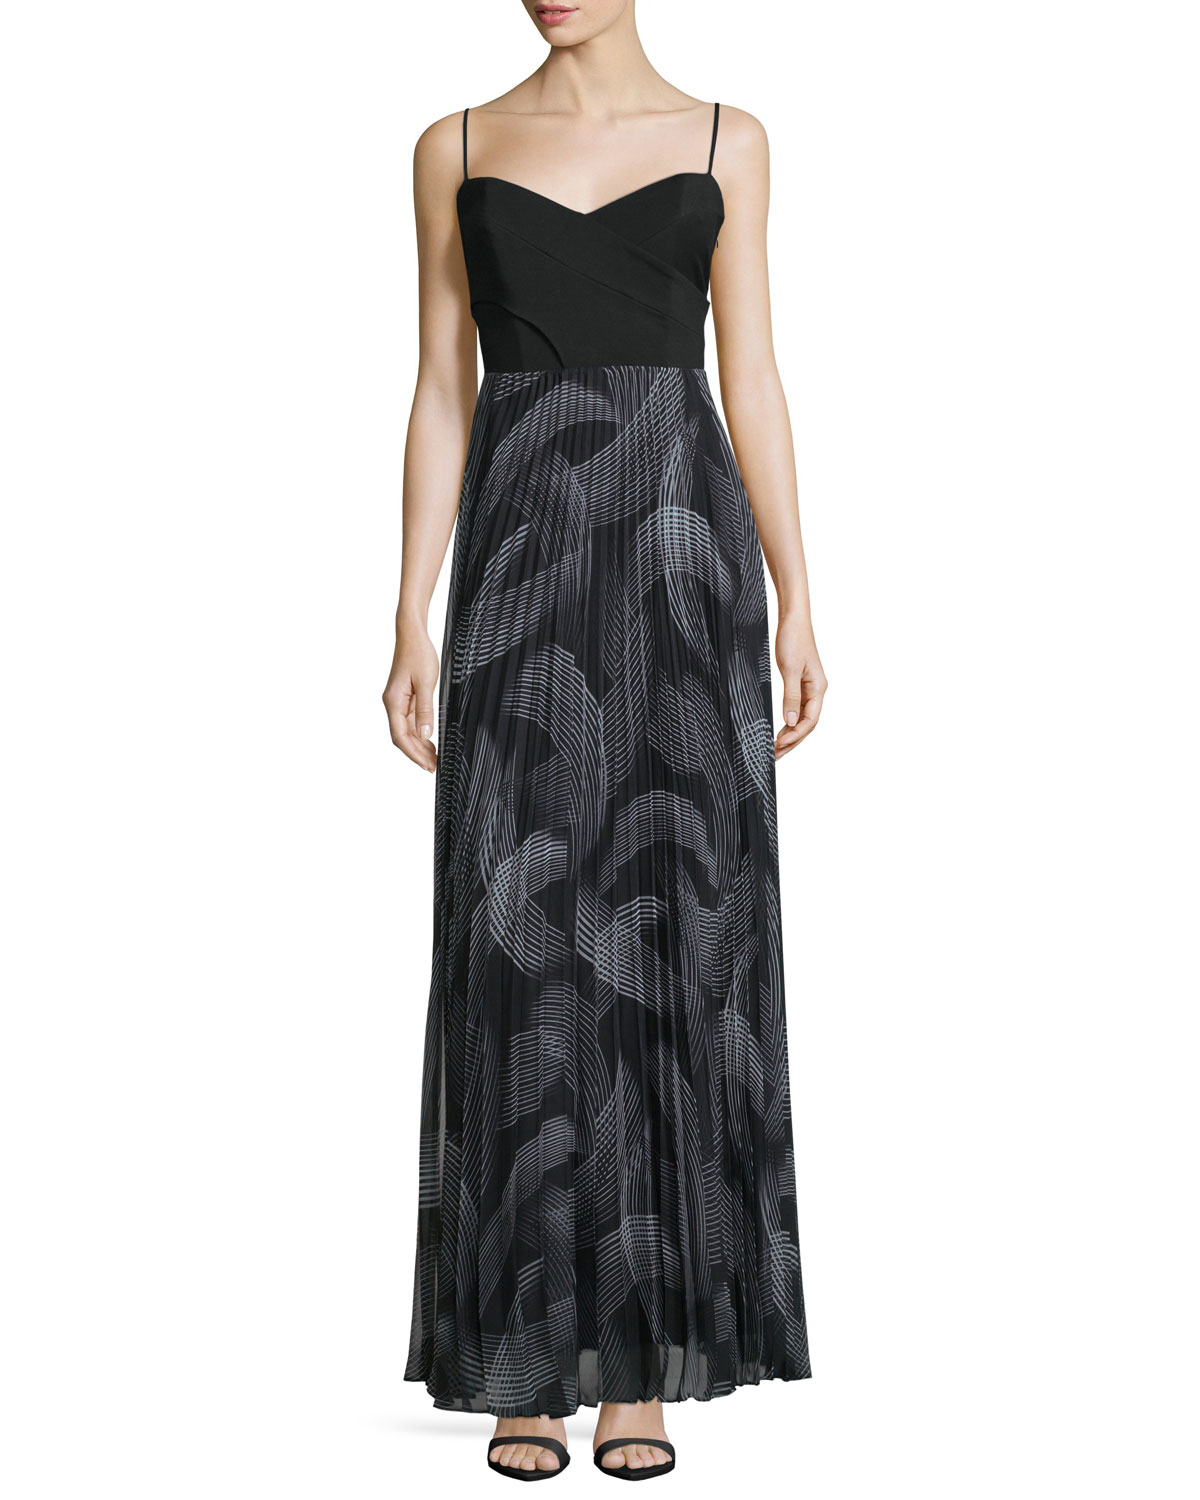 Lyst - Laundry By Shelli Segal Sweetheart-neck Pleated ...